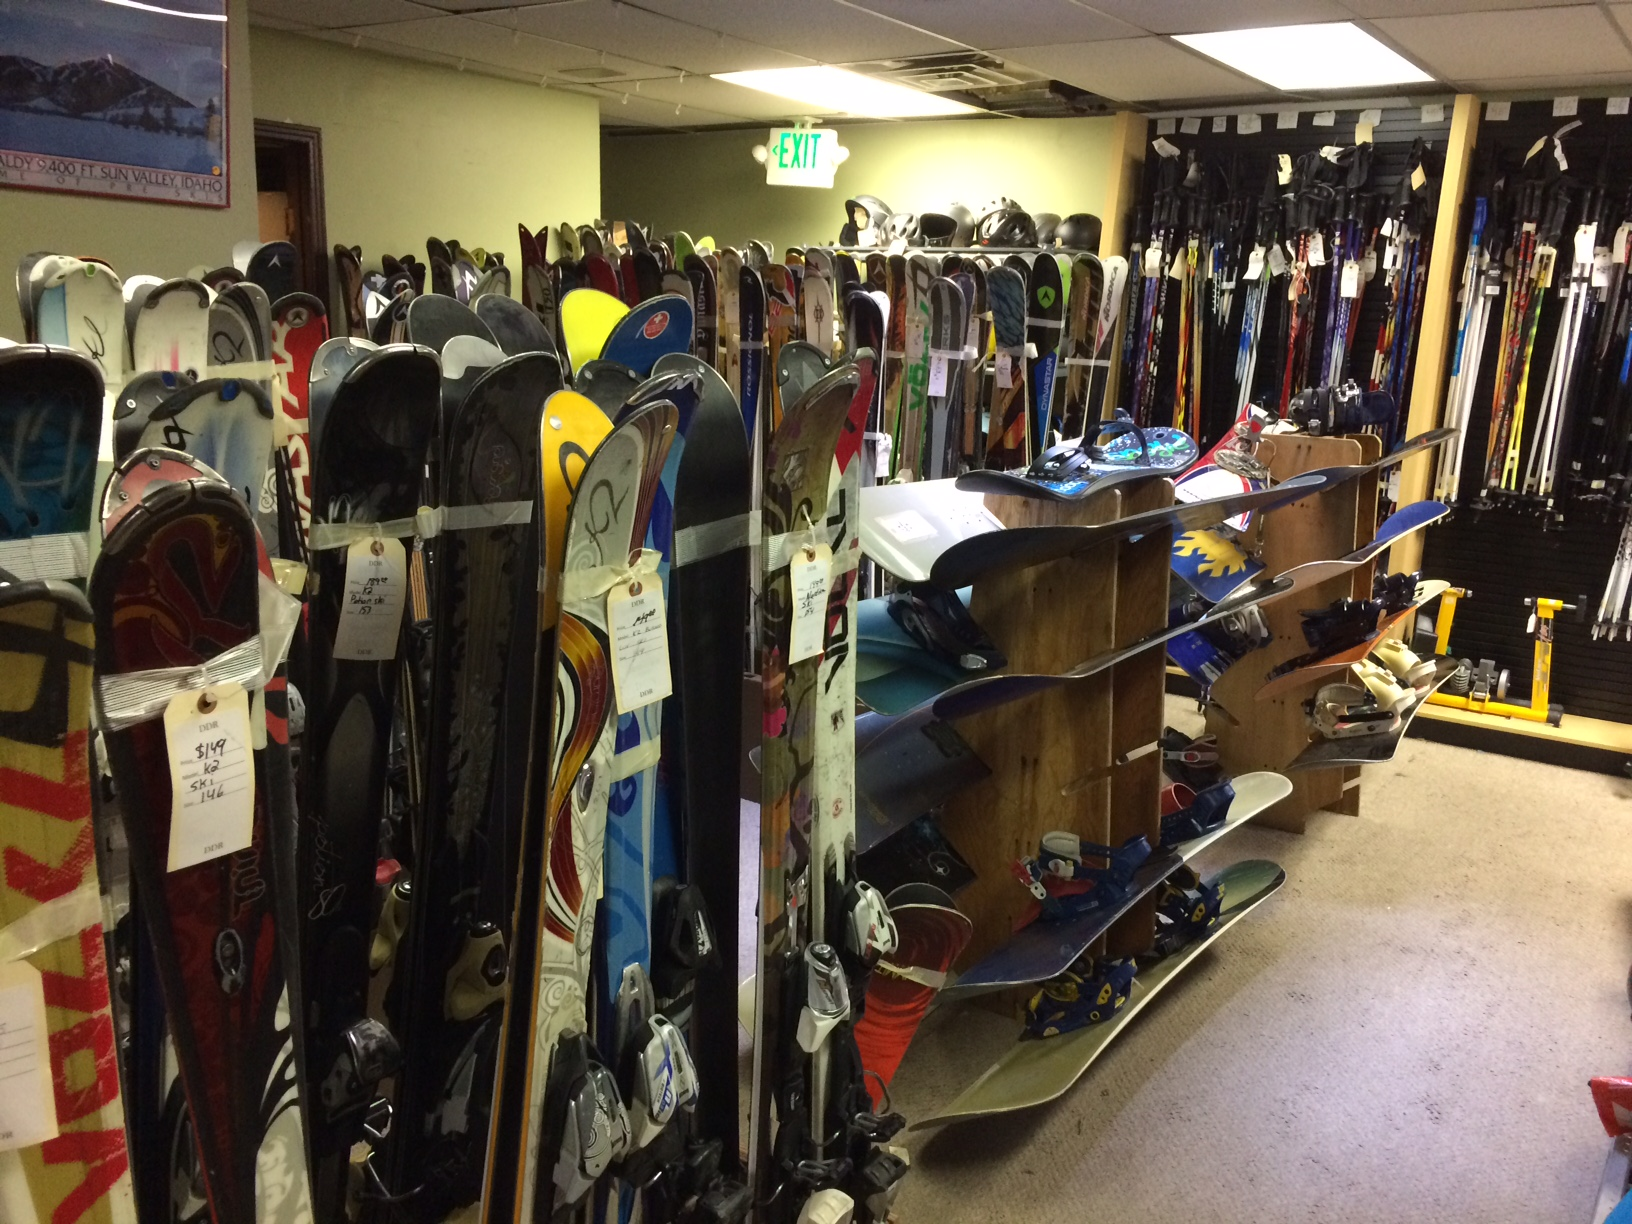 used outdoor gear, used skis, used snowboards, used ski boots, used snowboard boots, used ski goggles, used ski poles, used ice skates, used hockey skates